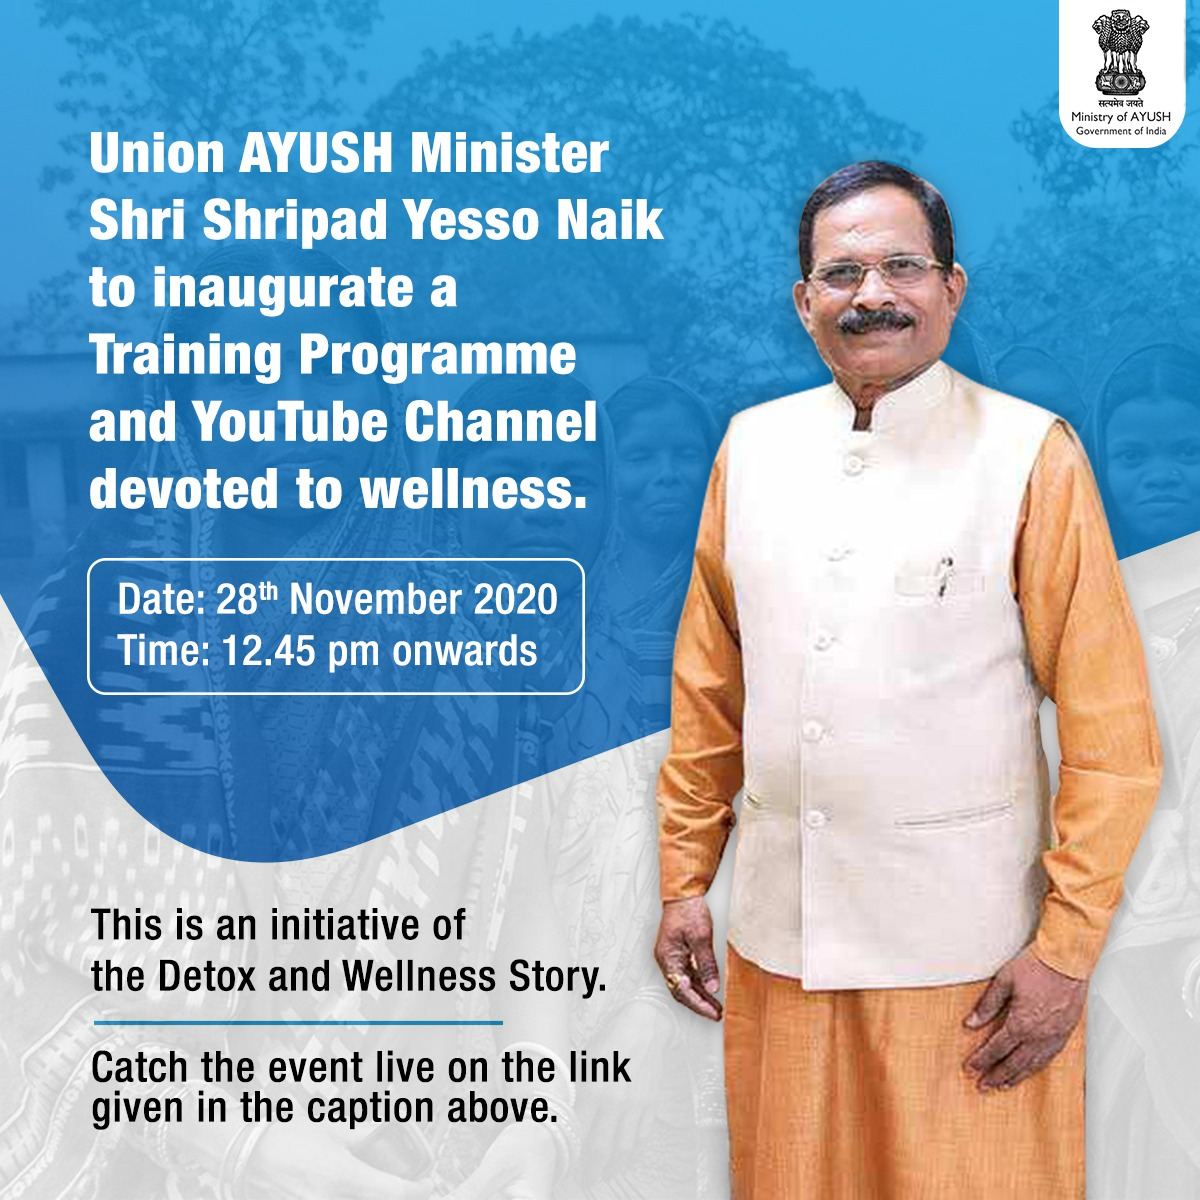 Shri Shripad Yesso Naik, Union AYUSH Minister to inaugurate a Training Programme and a YouTube Channel devoted to #wellness on the 28 November 2020.   The #trainingprogramme will help train many #youth and #women, thereby making them self-reliant.    These are initiatives